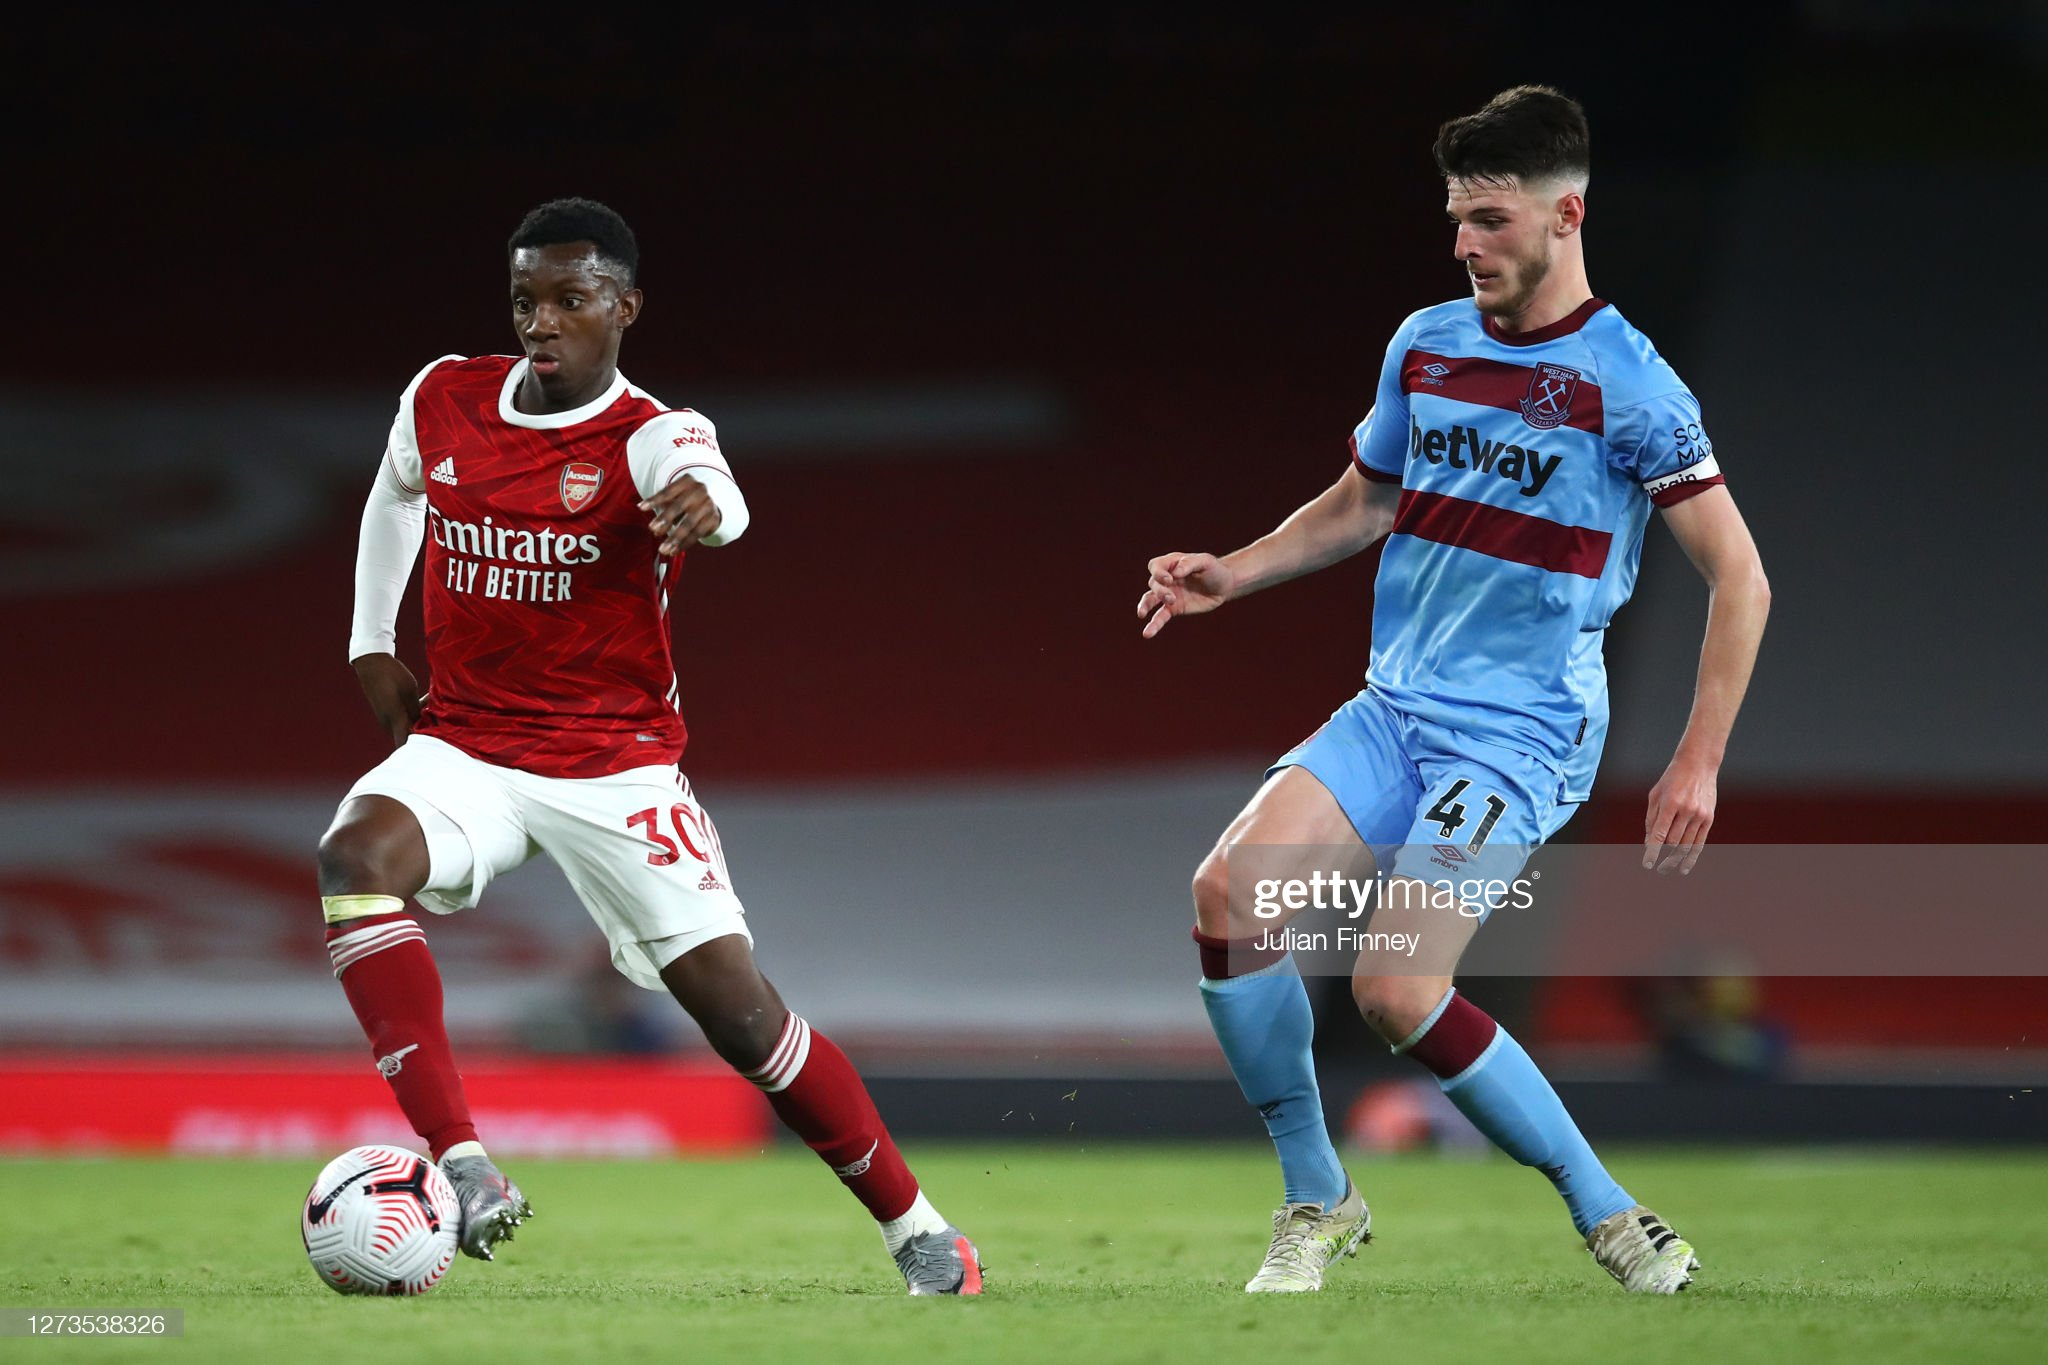 West Ham vs Arsenal Preview, prediction and odds